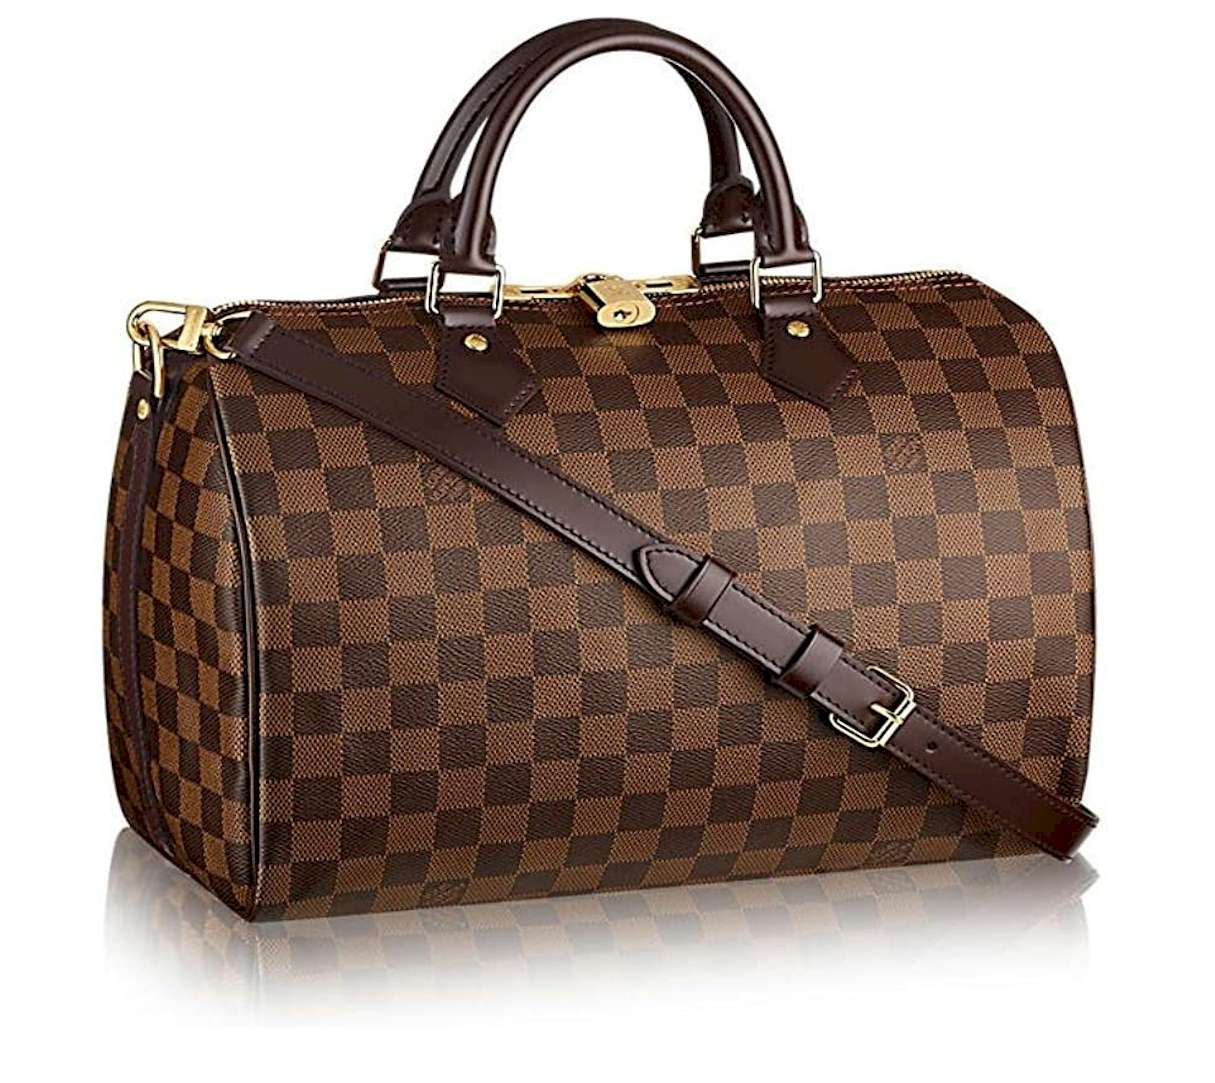 Louis Vuitton Brand -  Amazon USA Best Sellers 2022-amazon must haves 2021